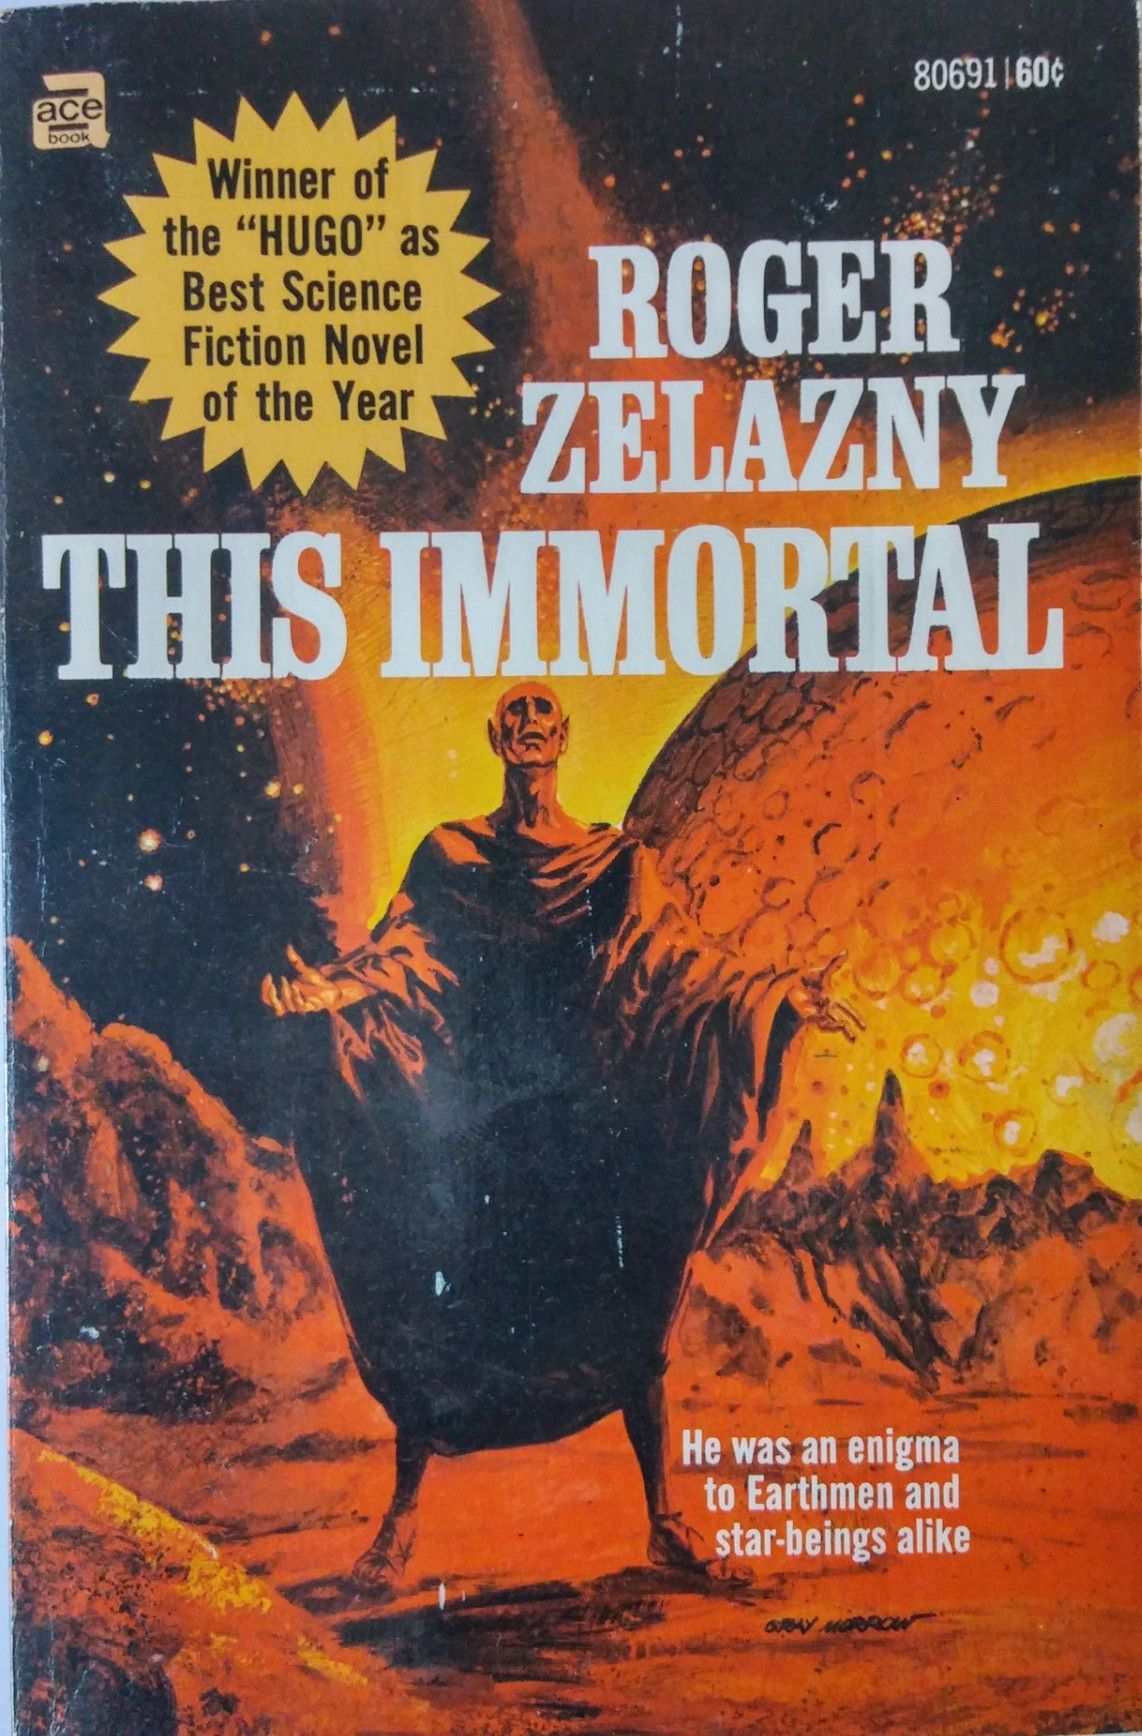 This Immortal (Ace Books 80691) -- Roger Zelazny